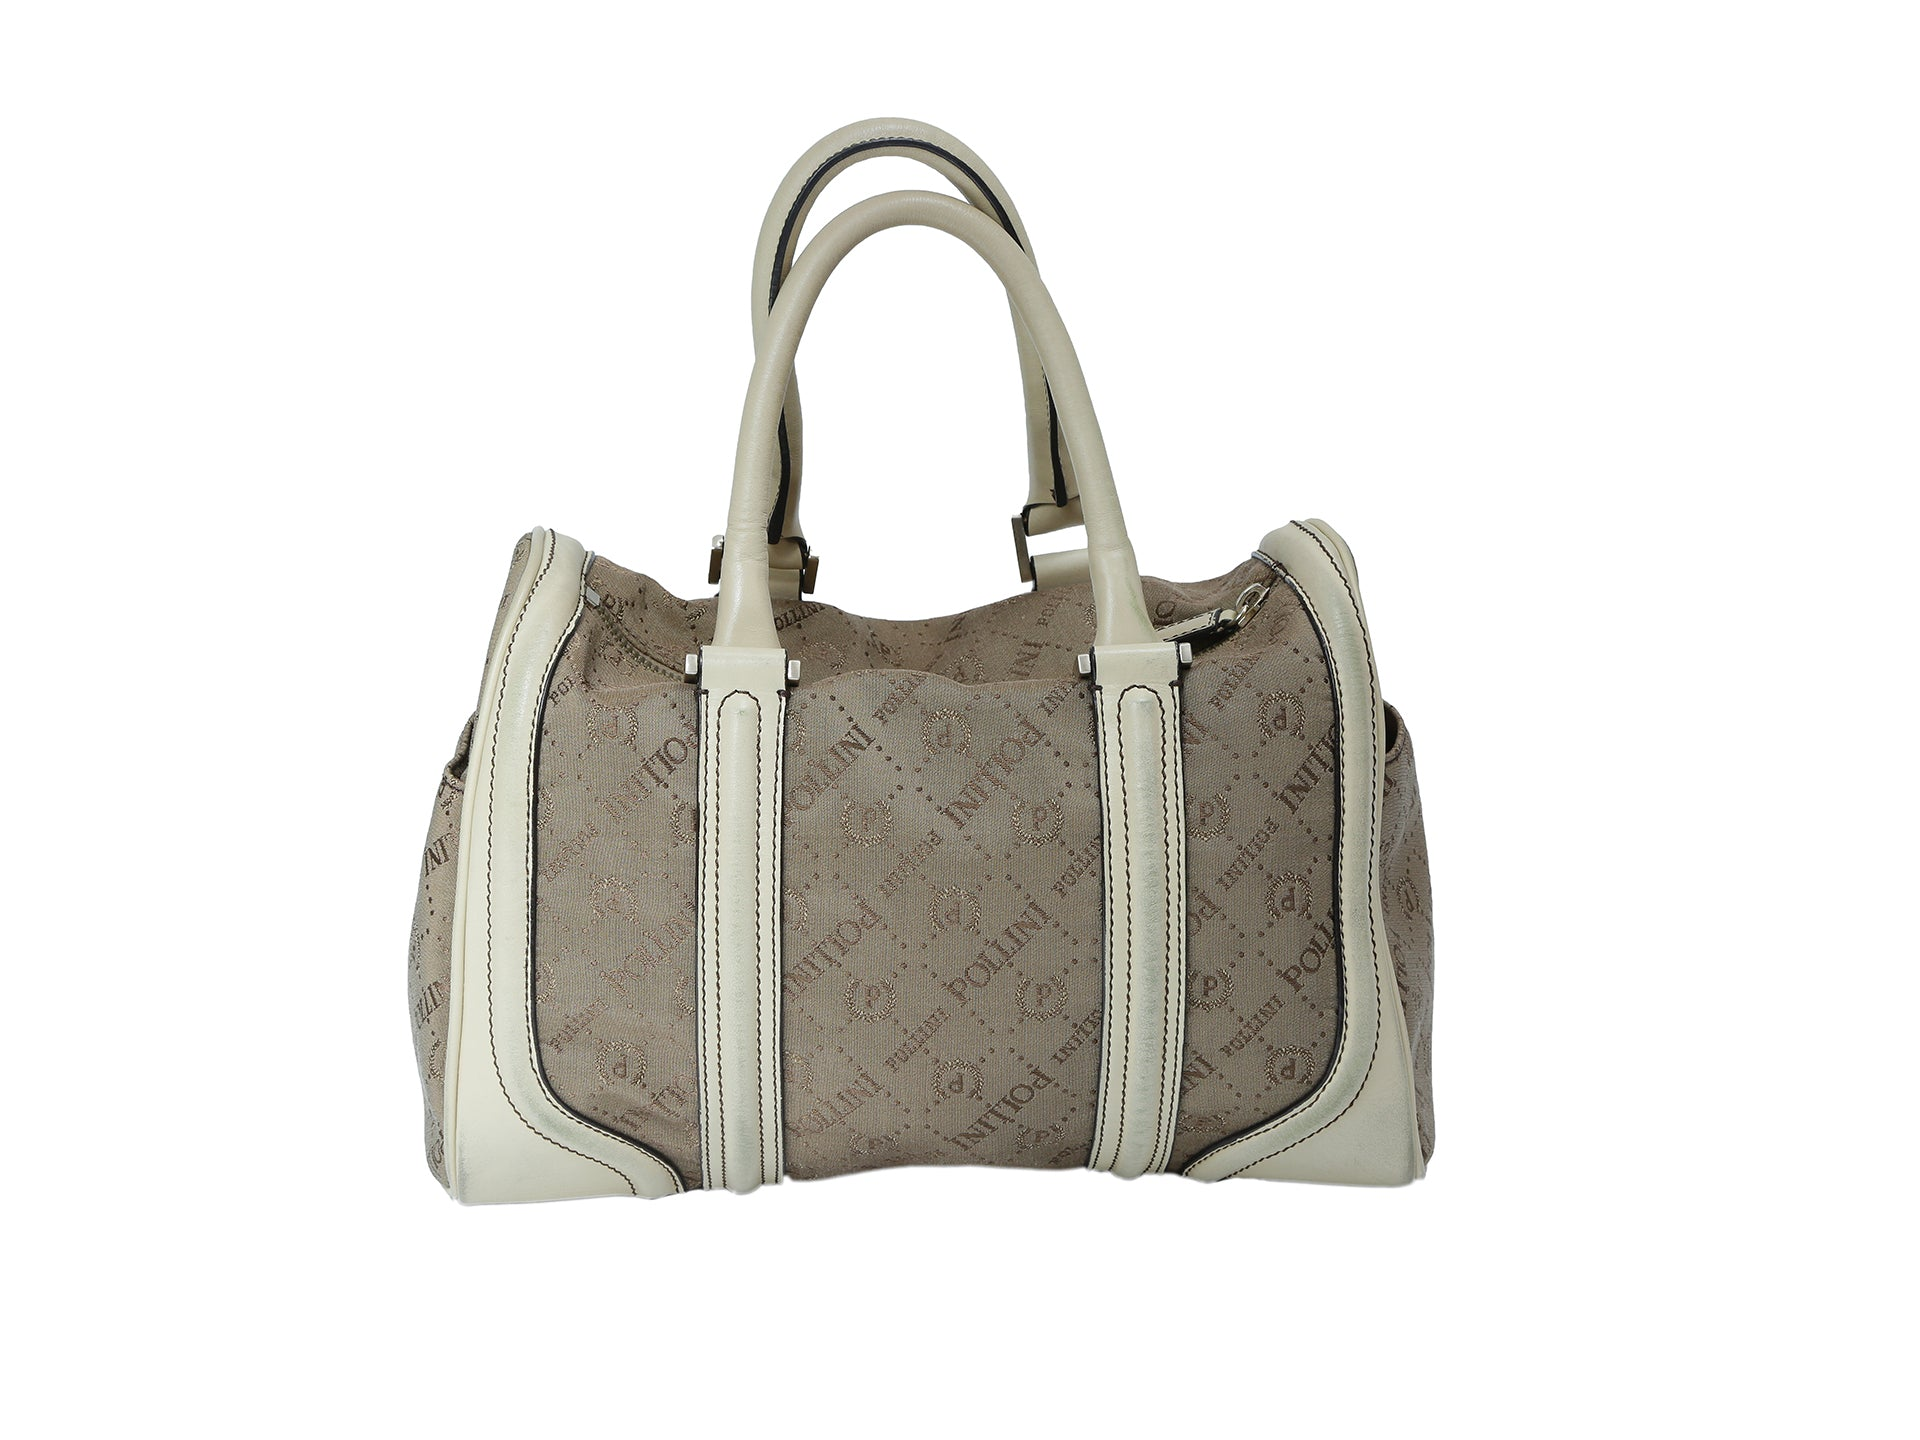 Pollini Brown and Beige Bag in Monogram Fabric